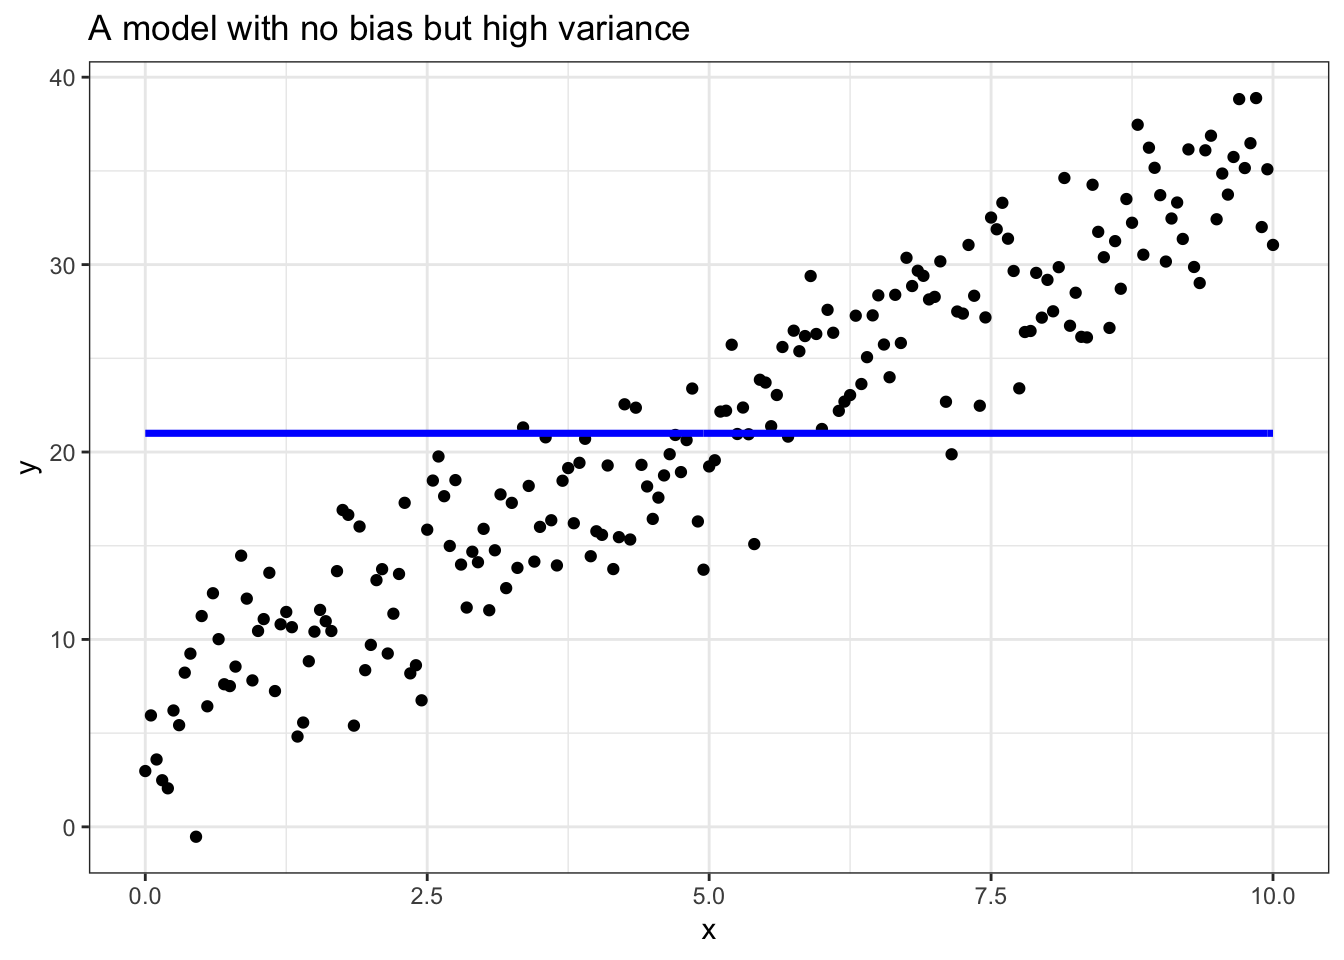 When we use the mean to predict the data, nearly all of our error is cause by the variance in our model.